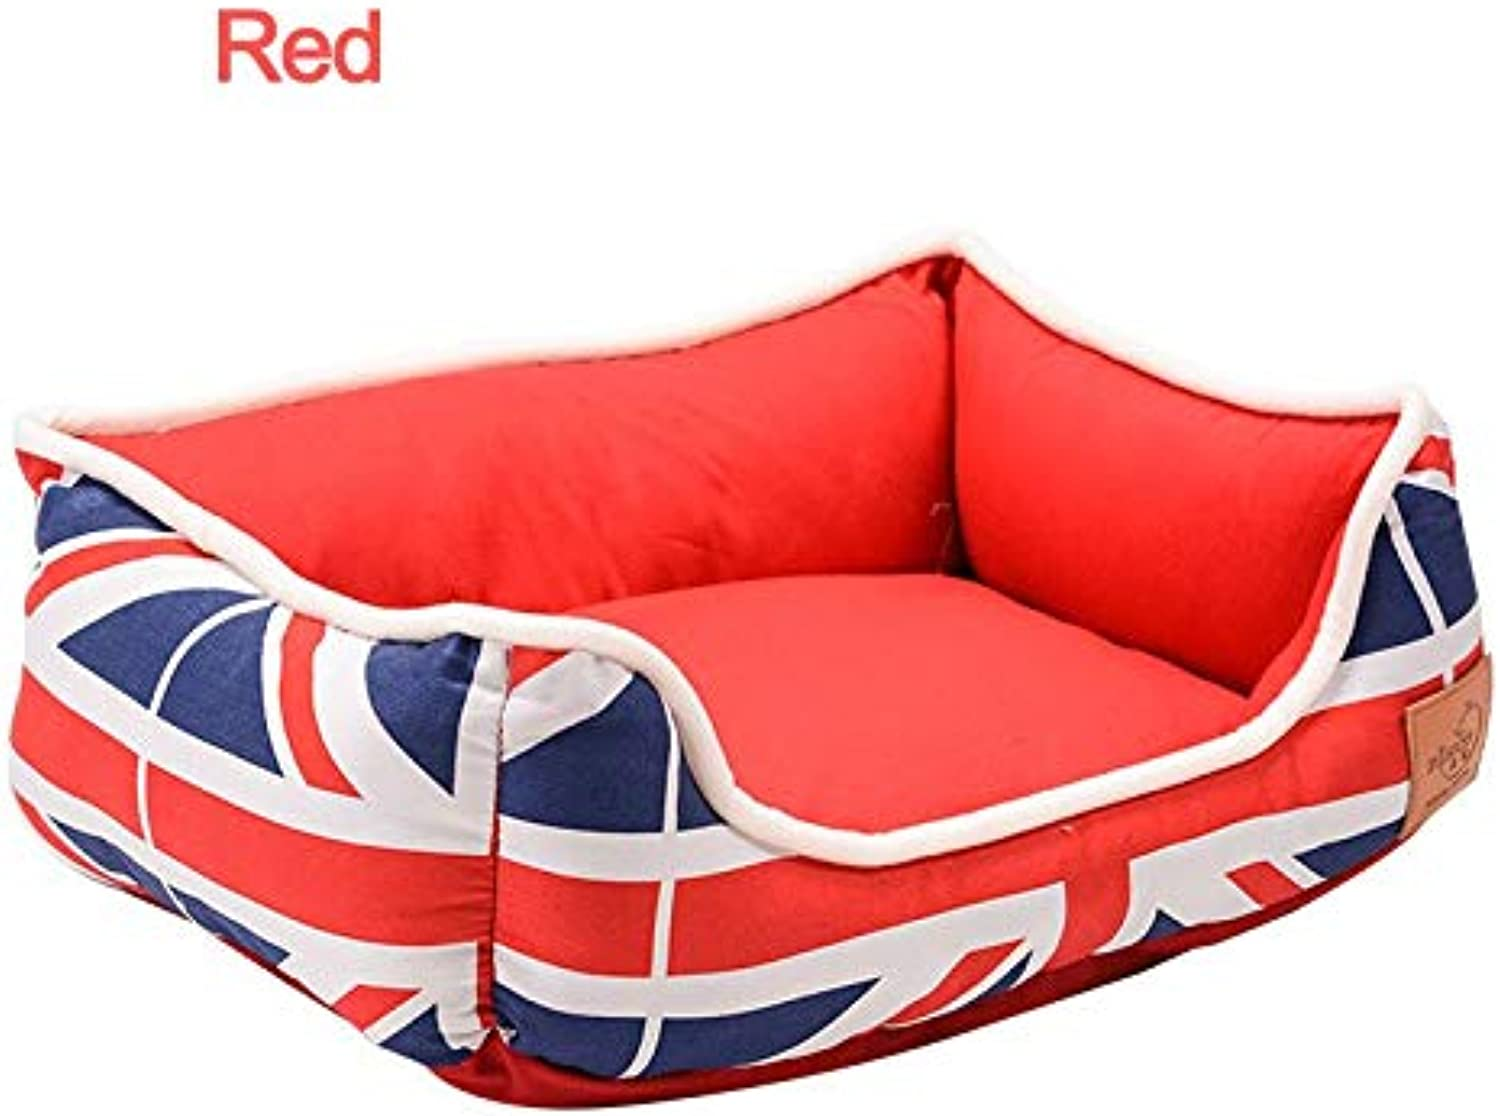 Aigou Dog Bed Soft Dog Bed Mat Kennels Detachable Warm Pet Beds For Animals Dog Beds For Small Medium Dogs Cat'S House Sofa Goods For Dogs